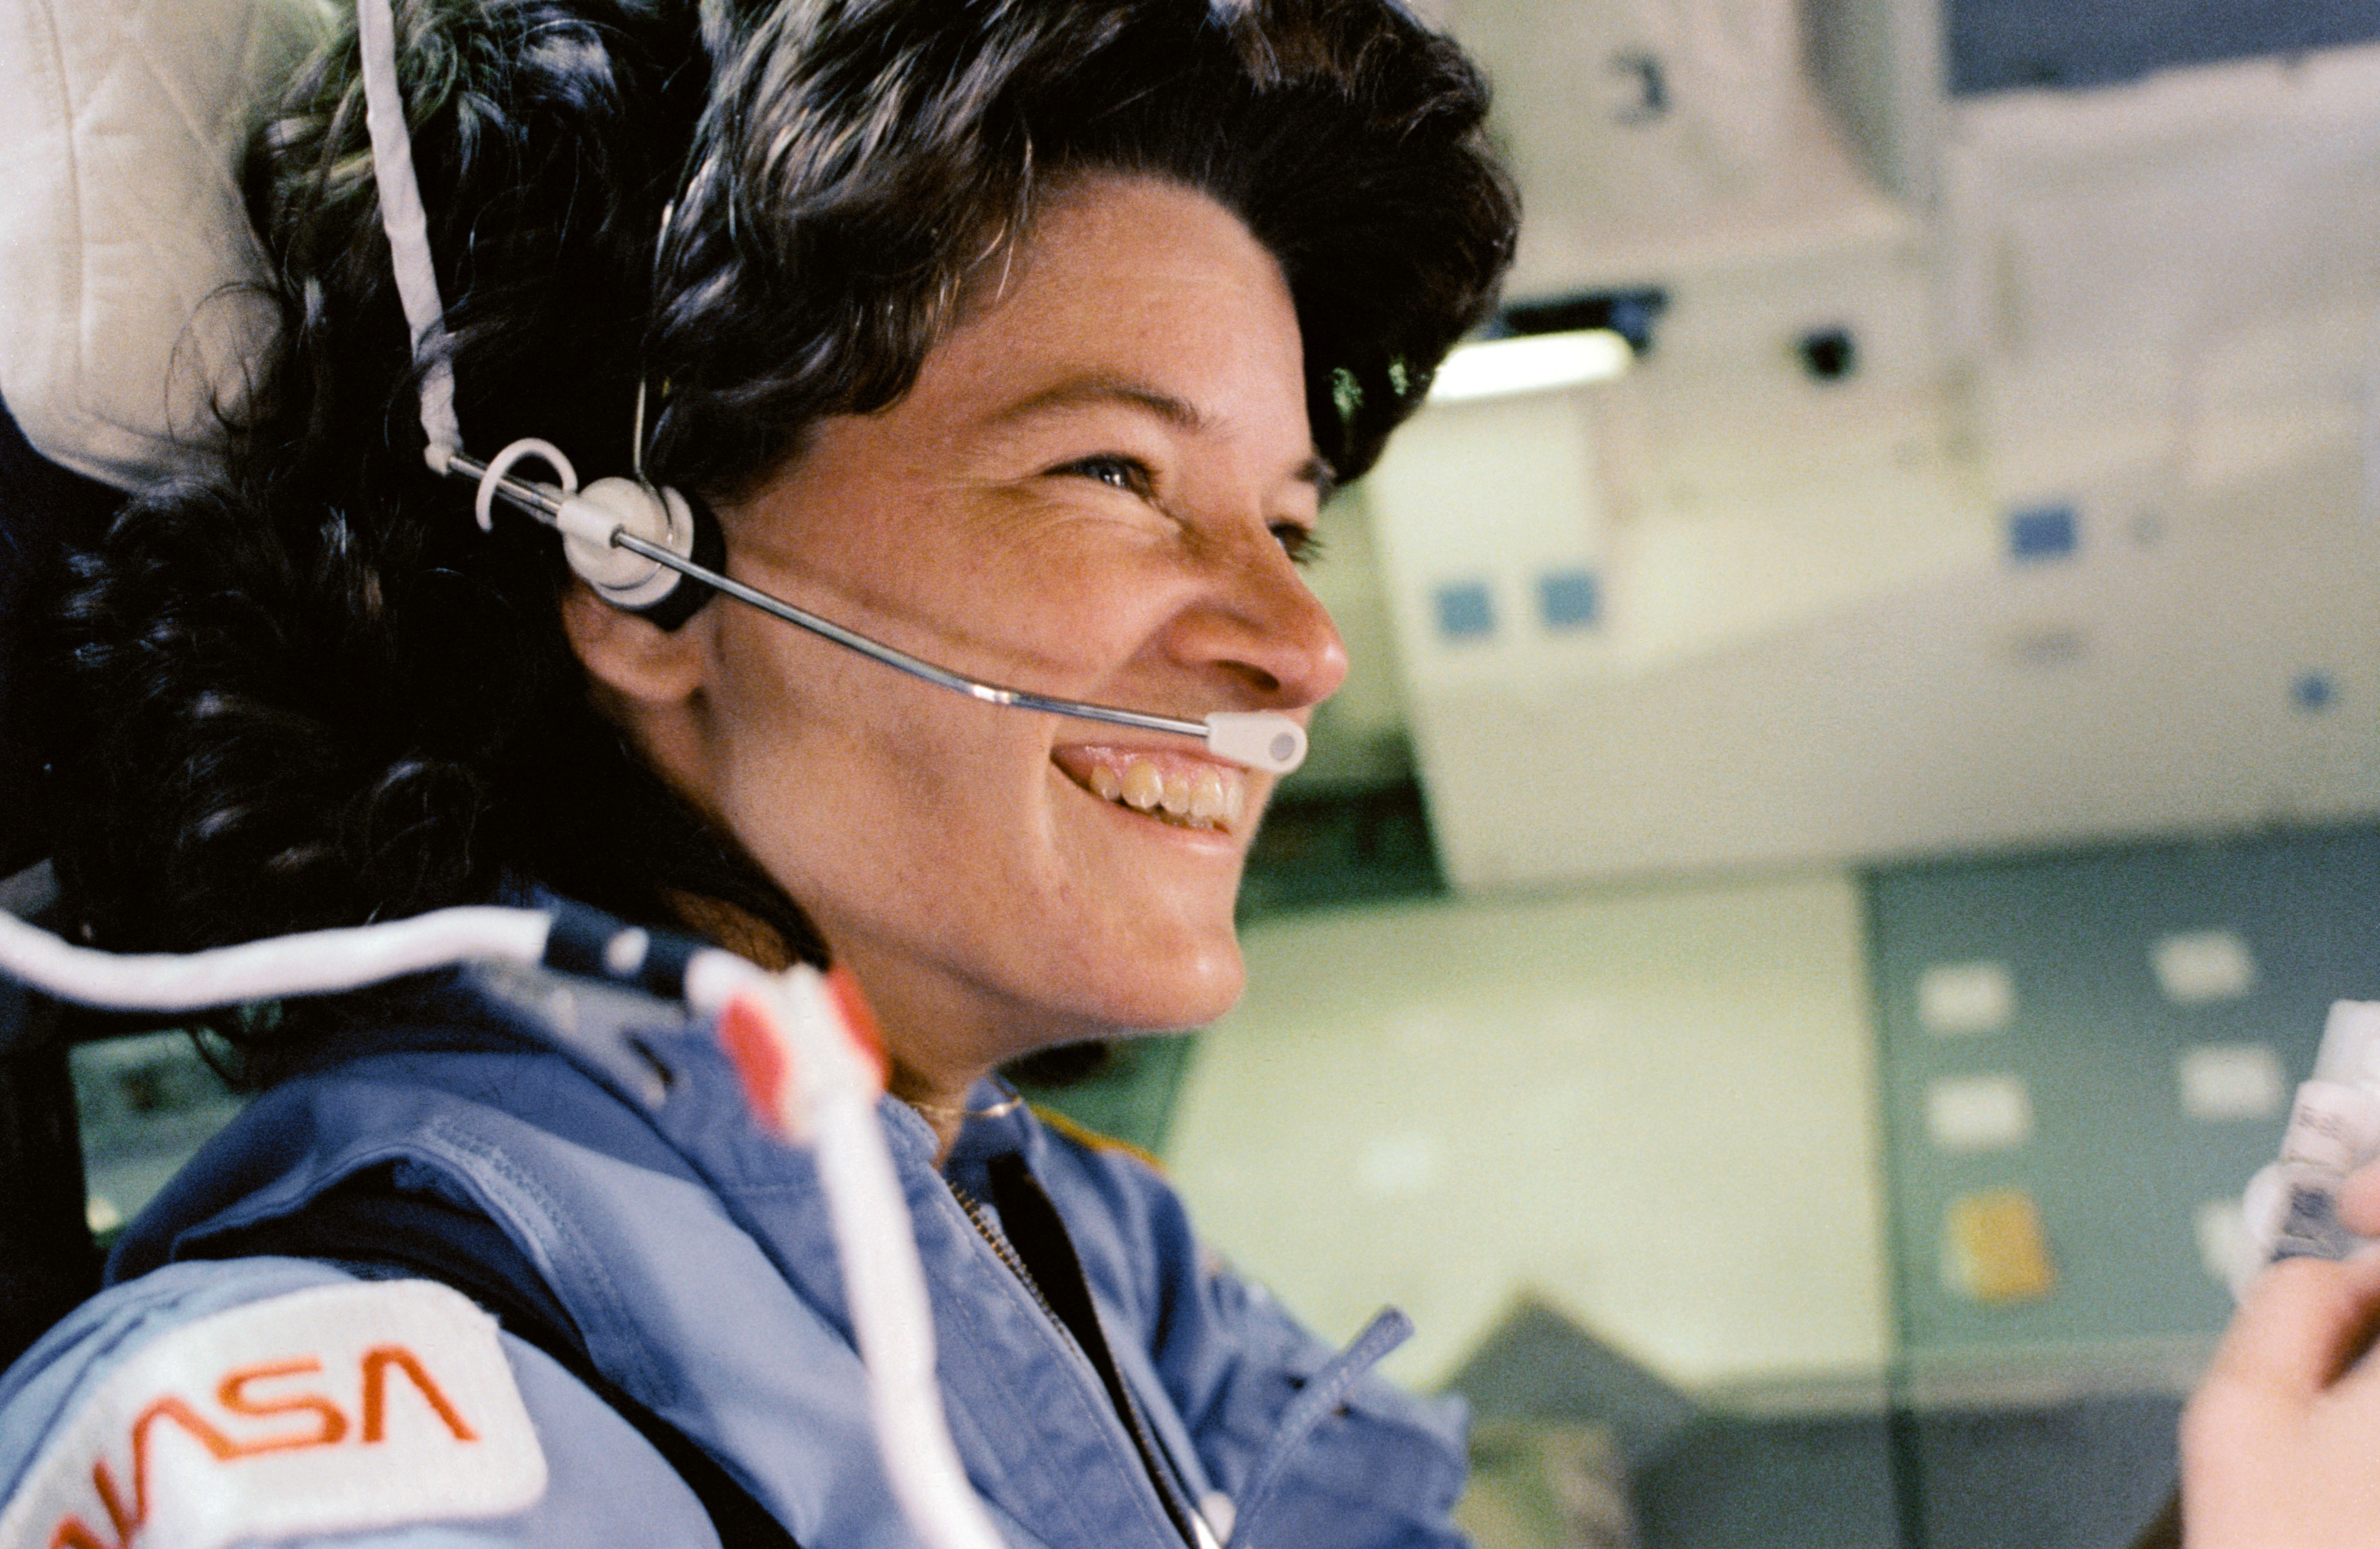 Blank on Blank with Sally Ride: Sally Ride in the Space Shuttle